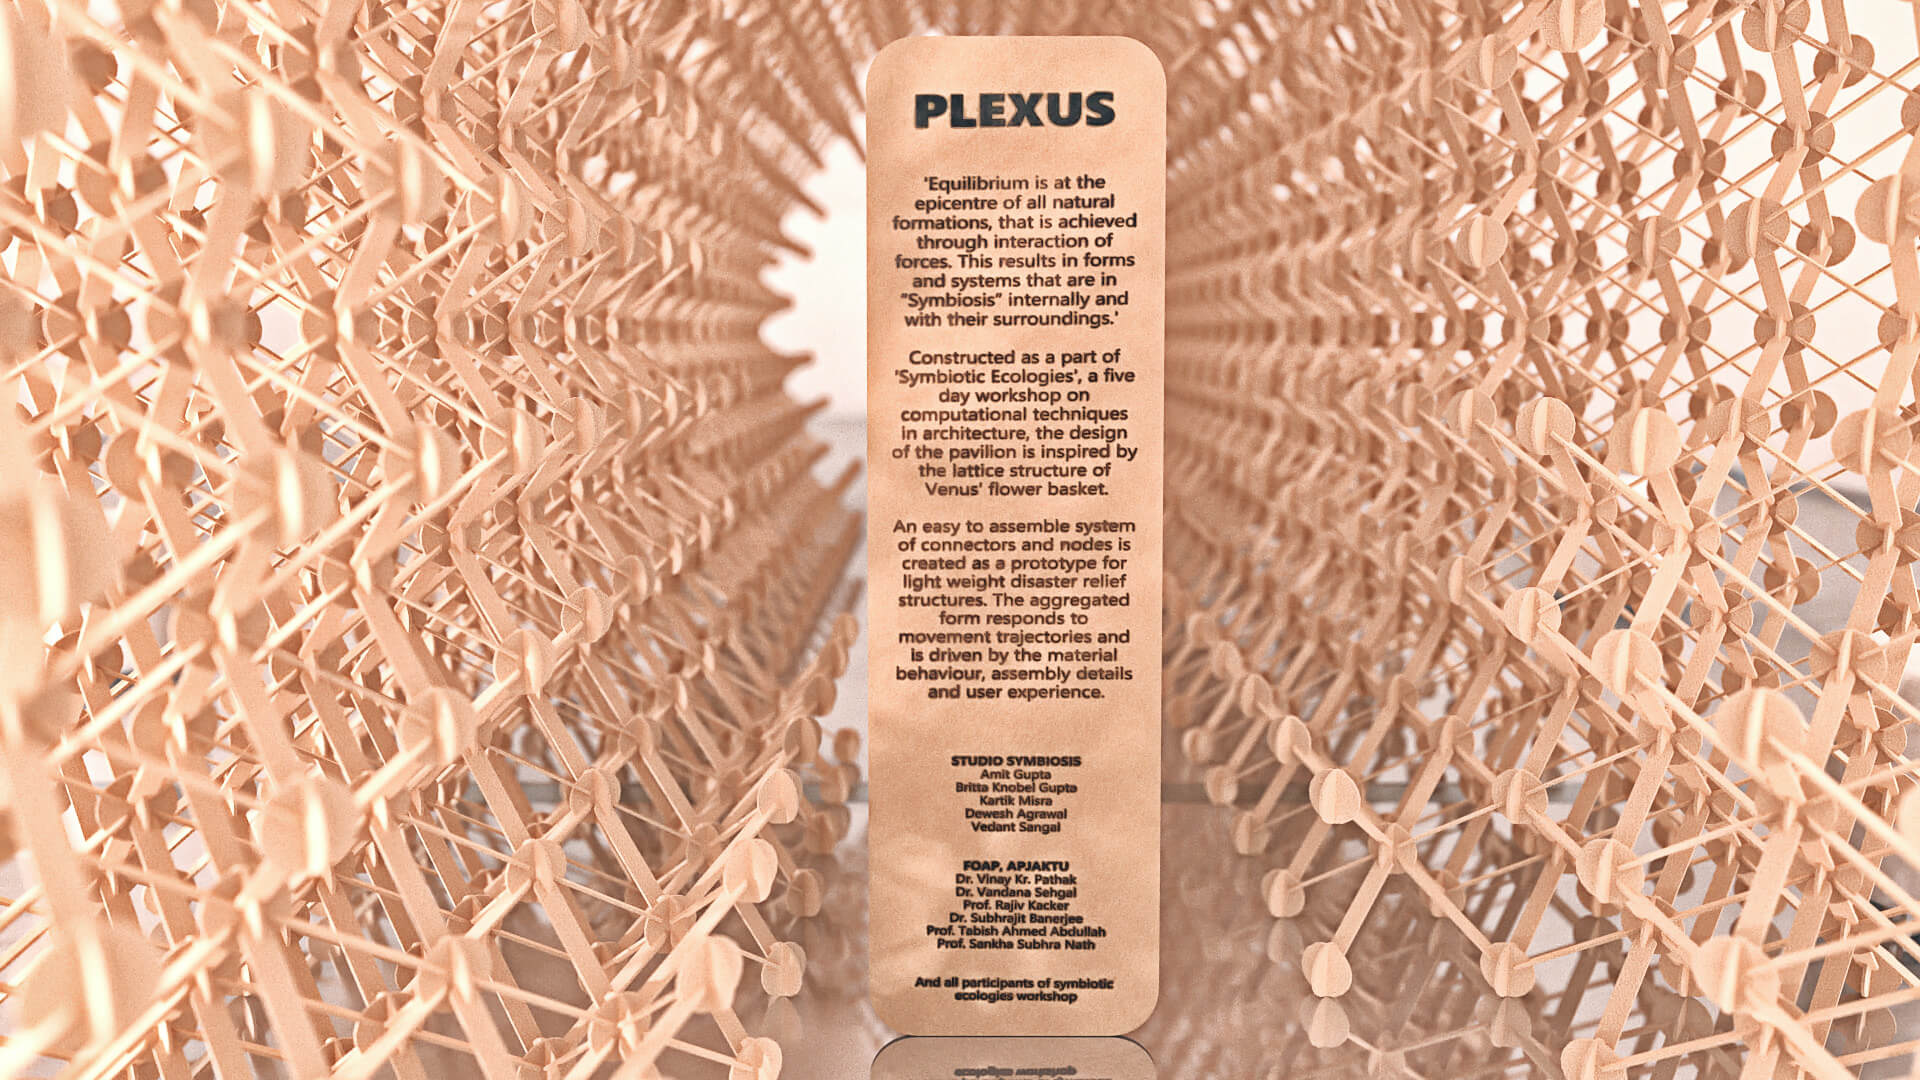 The amorphous frame is inspired by the latticed body of a Venus flower basket | Plexus by Studio Symbiosis | STIRworld